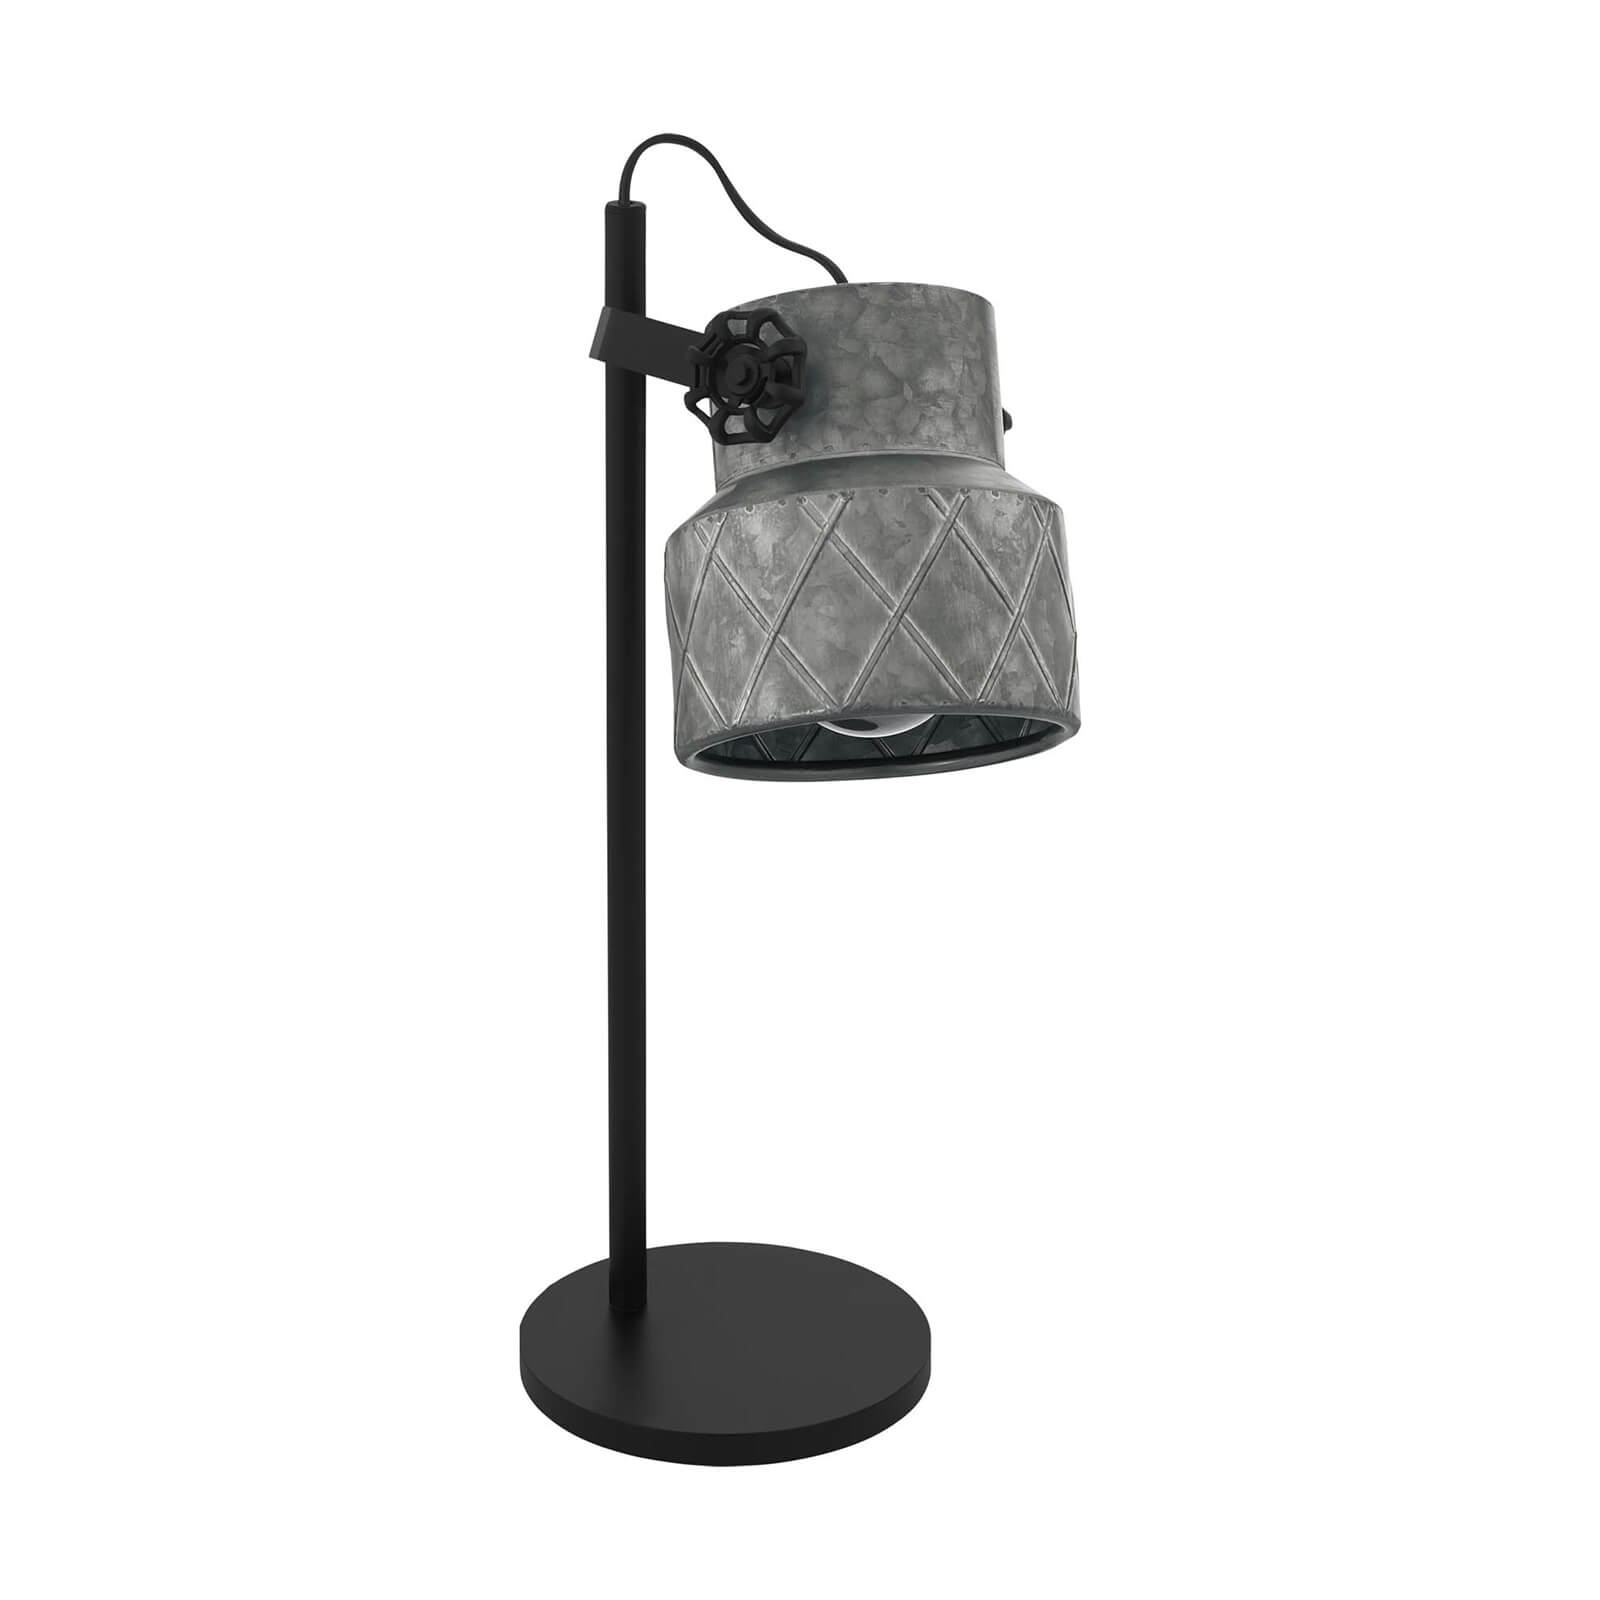 Eglo Hilcott Industrial Black and Grey Table Lamp